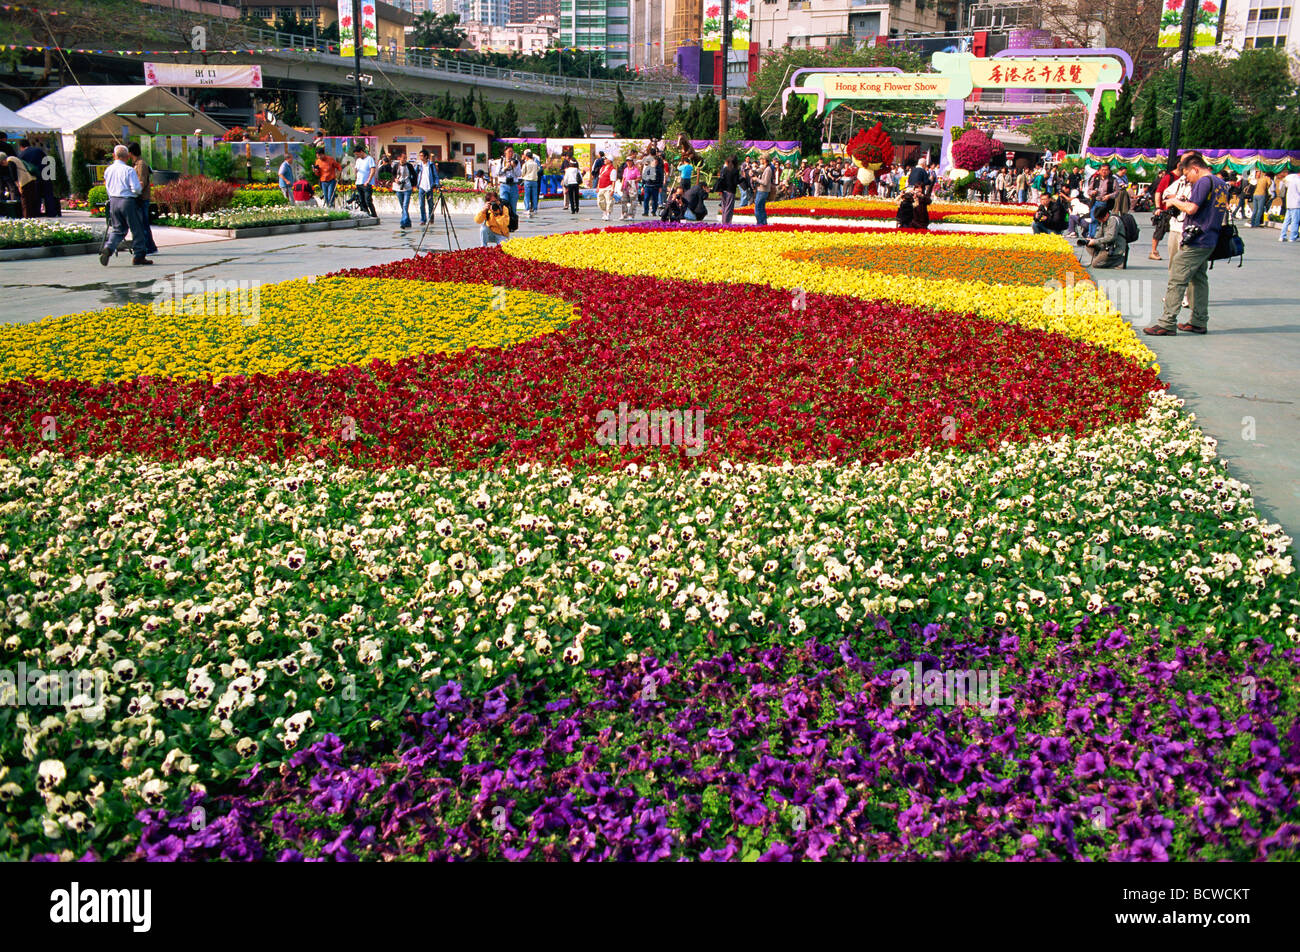 Garden By The Bay Flower Show causeway bay, hong kong flower show, hong kong, china stock photo